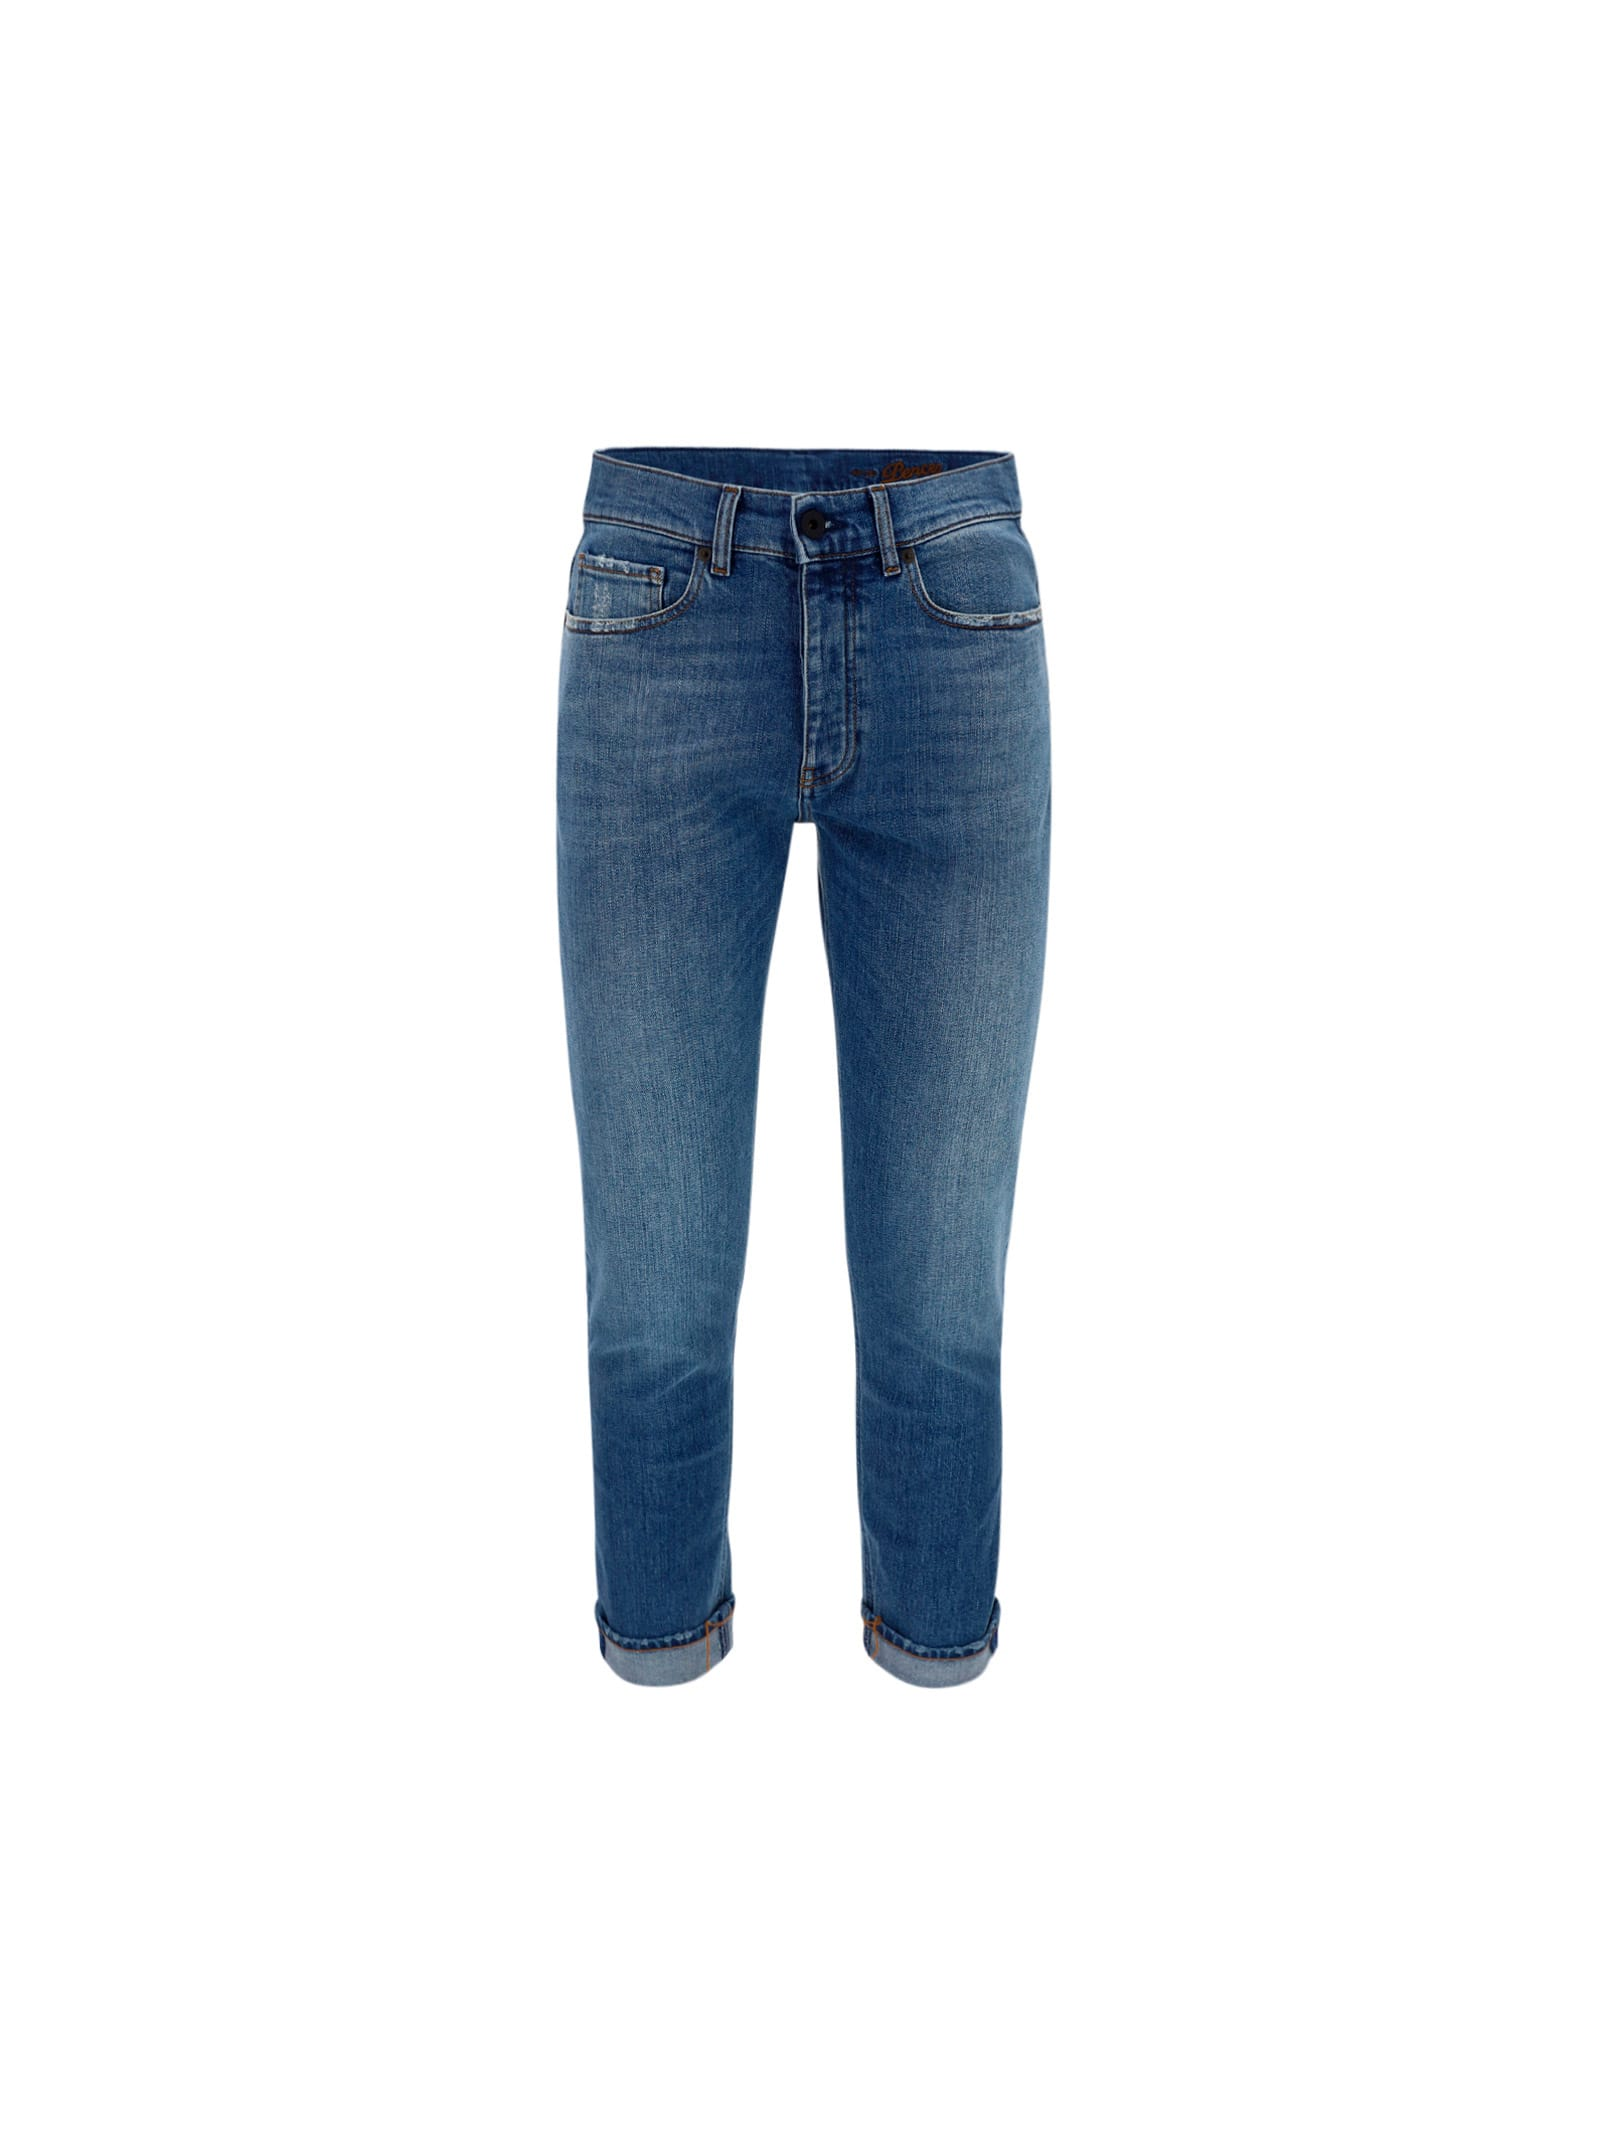 Pence Cottons JEANS